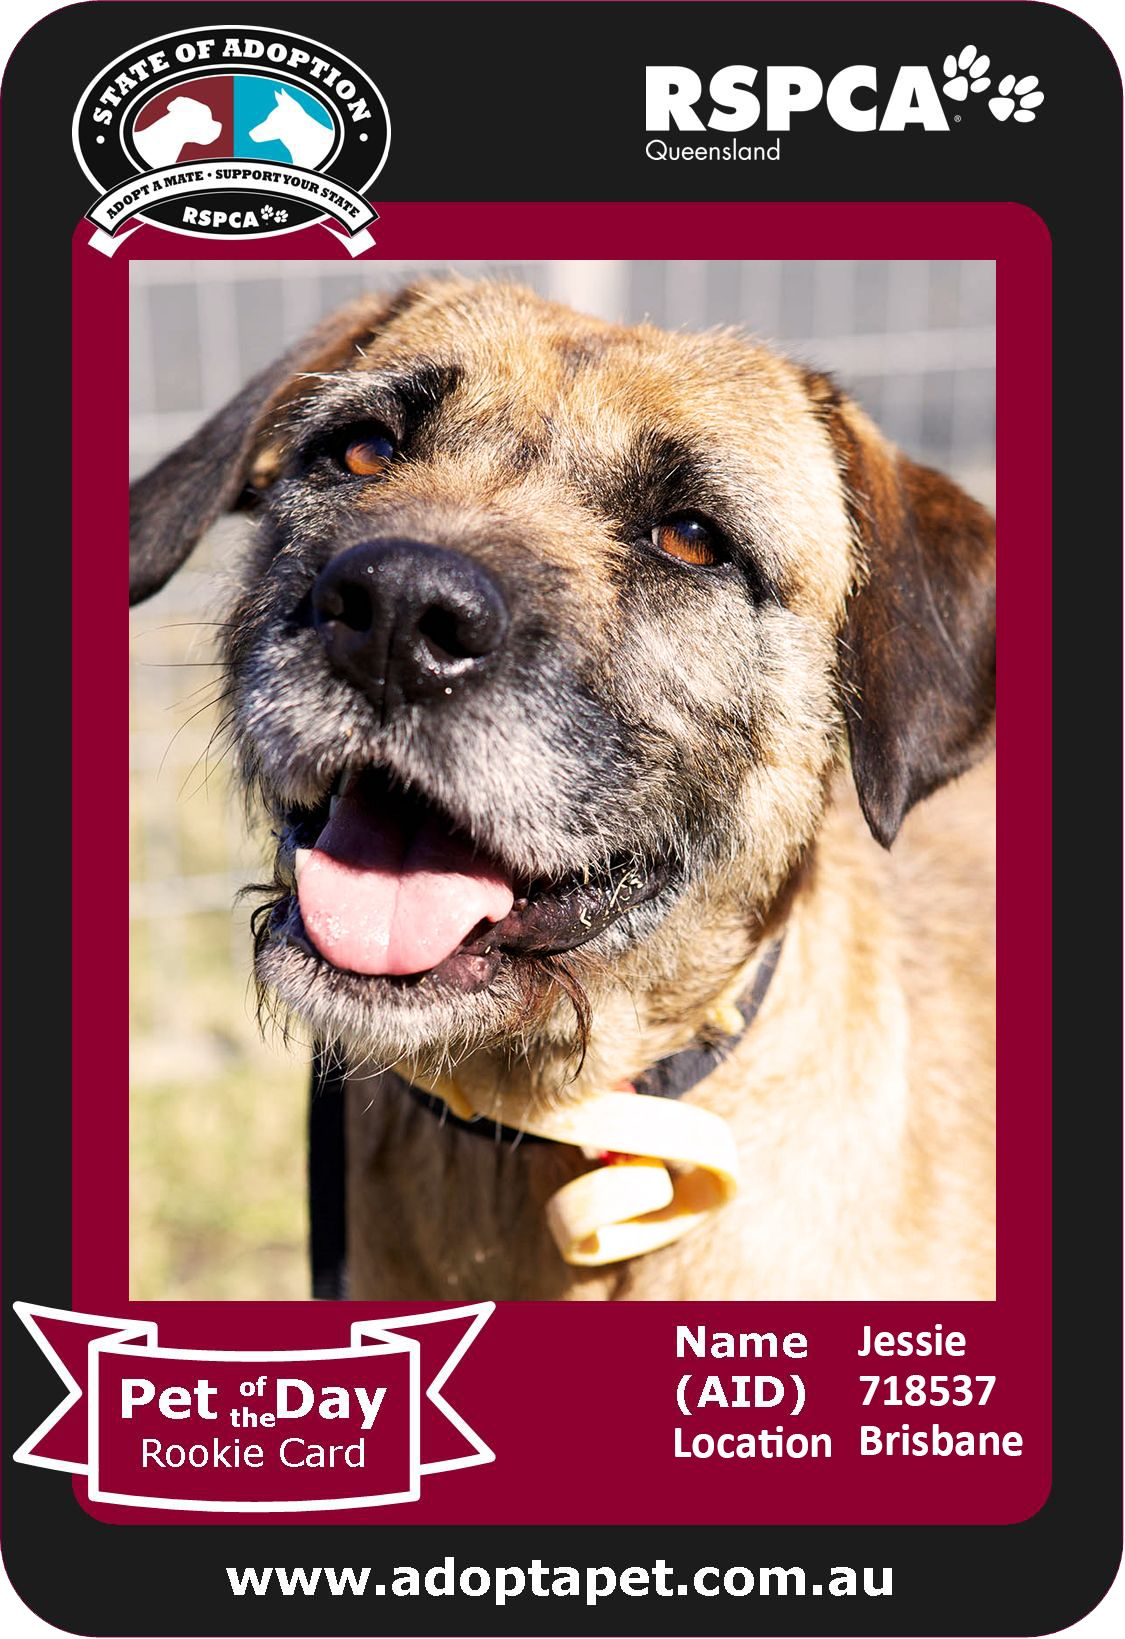 Hello I M Jessie And Don T Let My Looks Fool You I M Very Agile I Ve Jumped Straight Over A 4ft Fence For This Reason I Need To Animals Adoption Pet